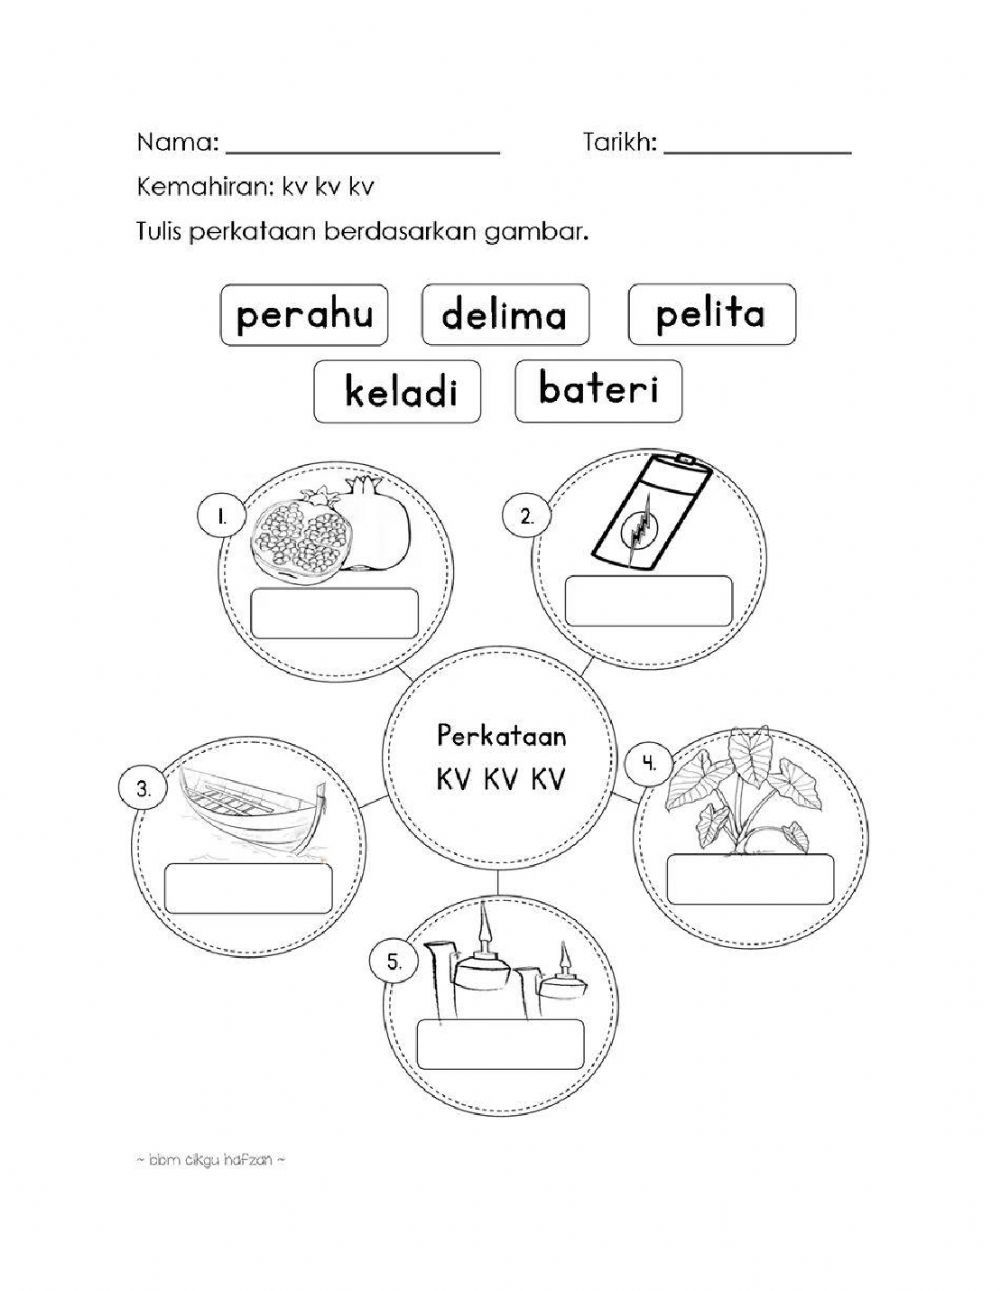 Suku Kata Kvkvkv Online Worksheet For Tahun 2 You Can Do The Exercises Online Or Download The Worksheet As Pdf In 2021 Worksheets Workbook My Teacher